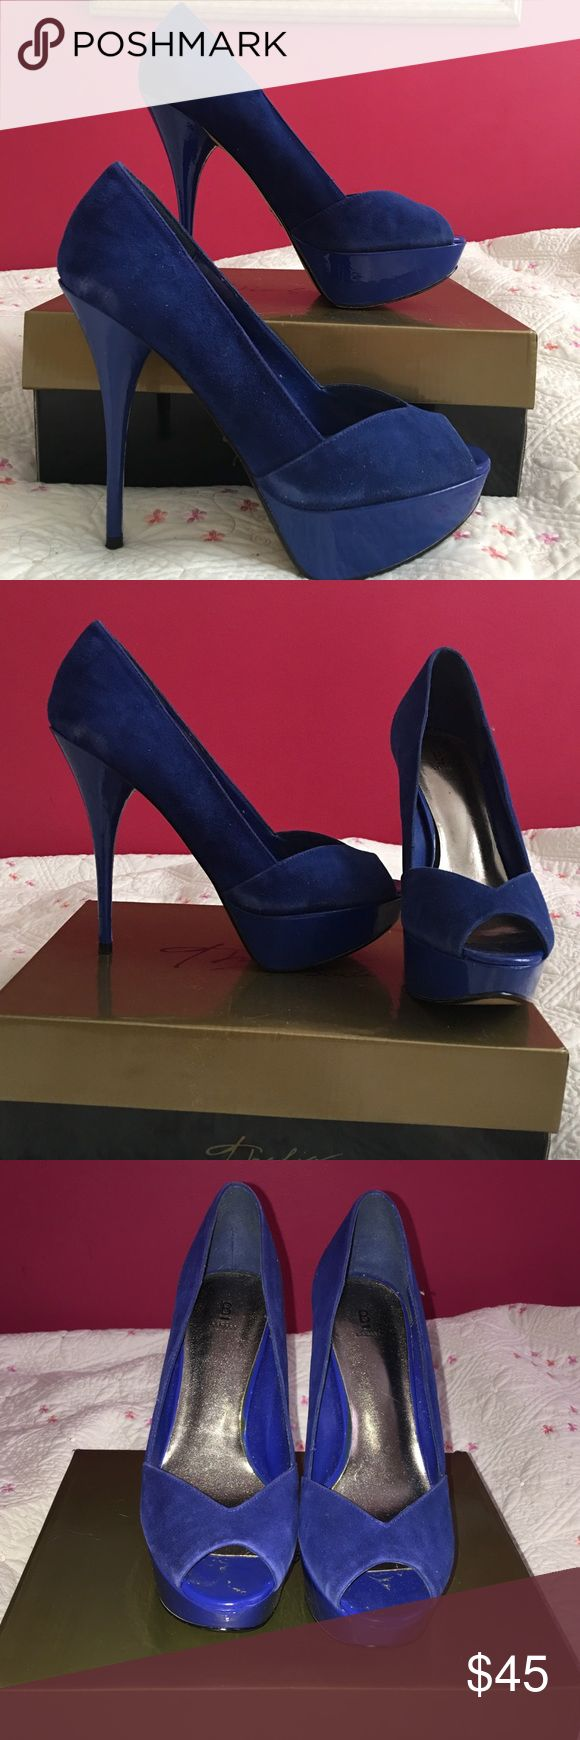 Bakers Blue Suede Pumps Peep toe royal blue suede pumps. Gently used. Bakers Shoes Platforms